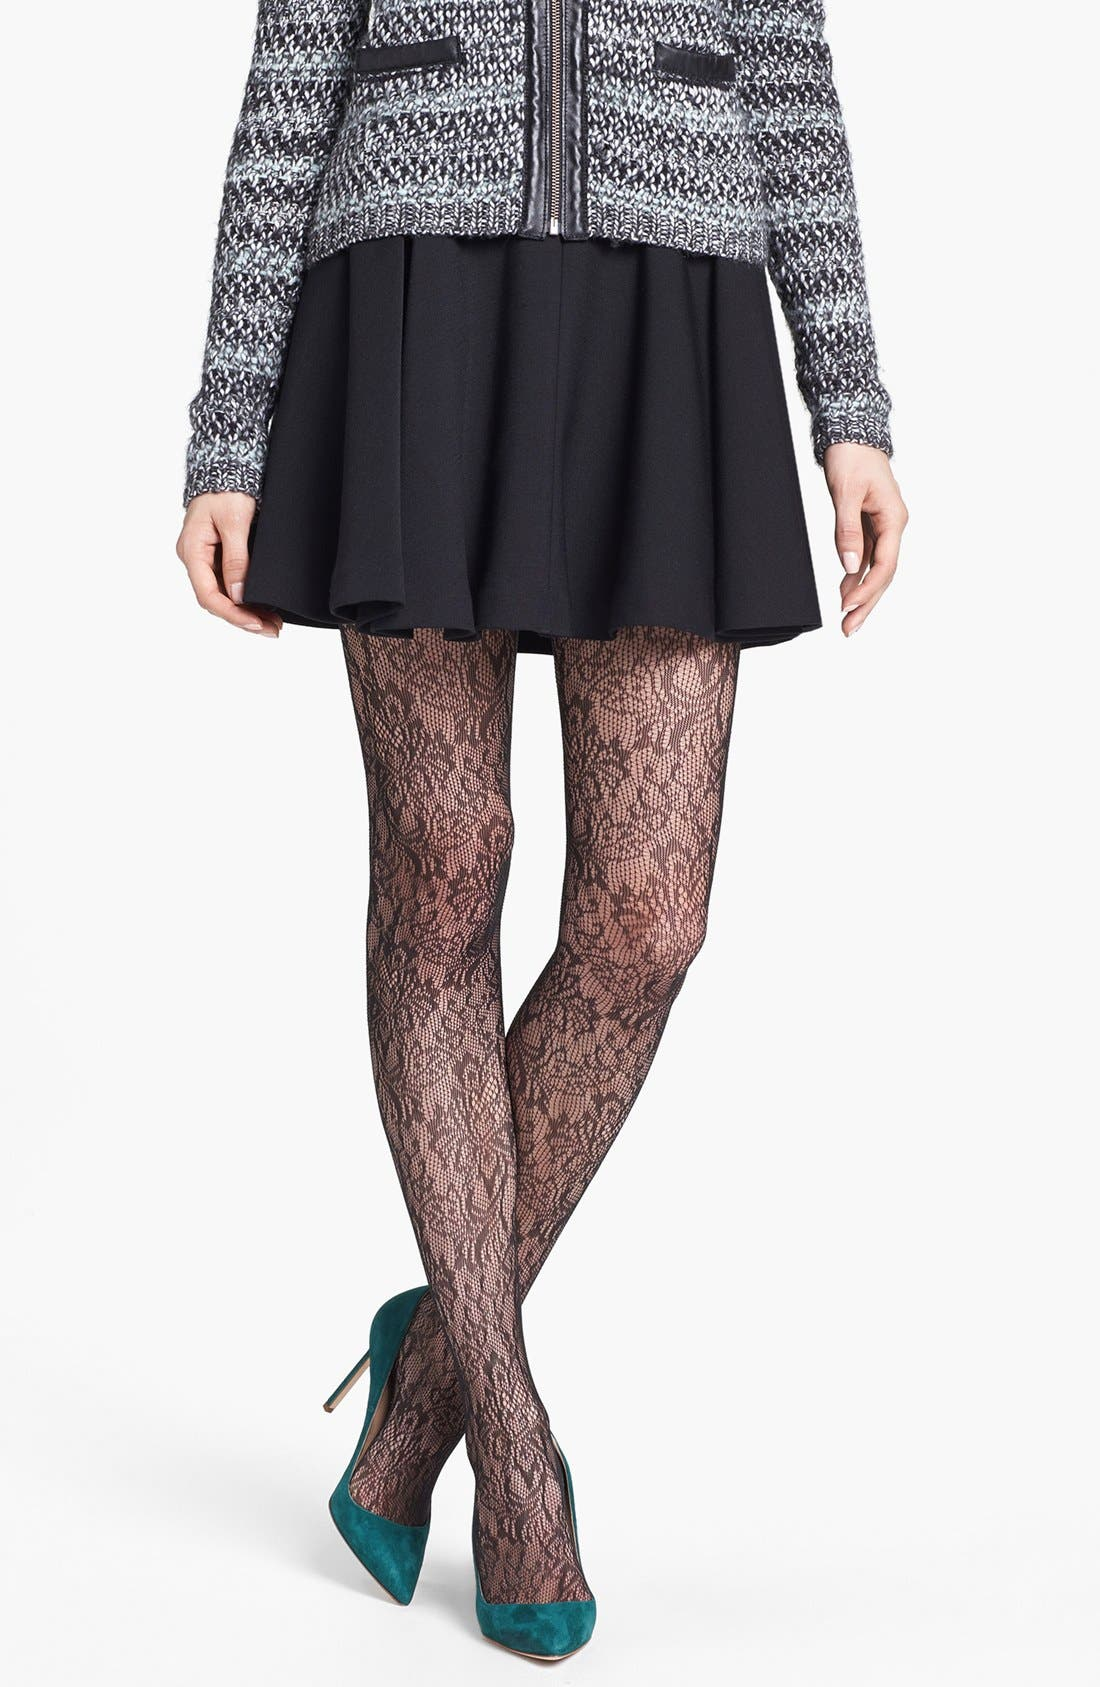 Main Image - SPANX® 'Uptown Tight-End Tights® - Look at Me Lace' Tights